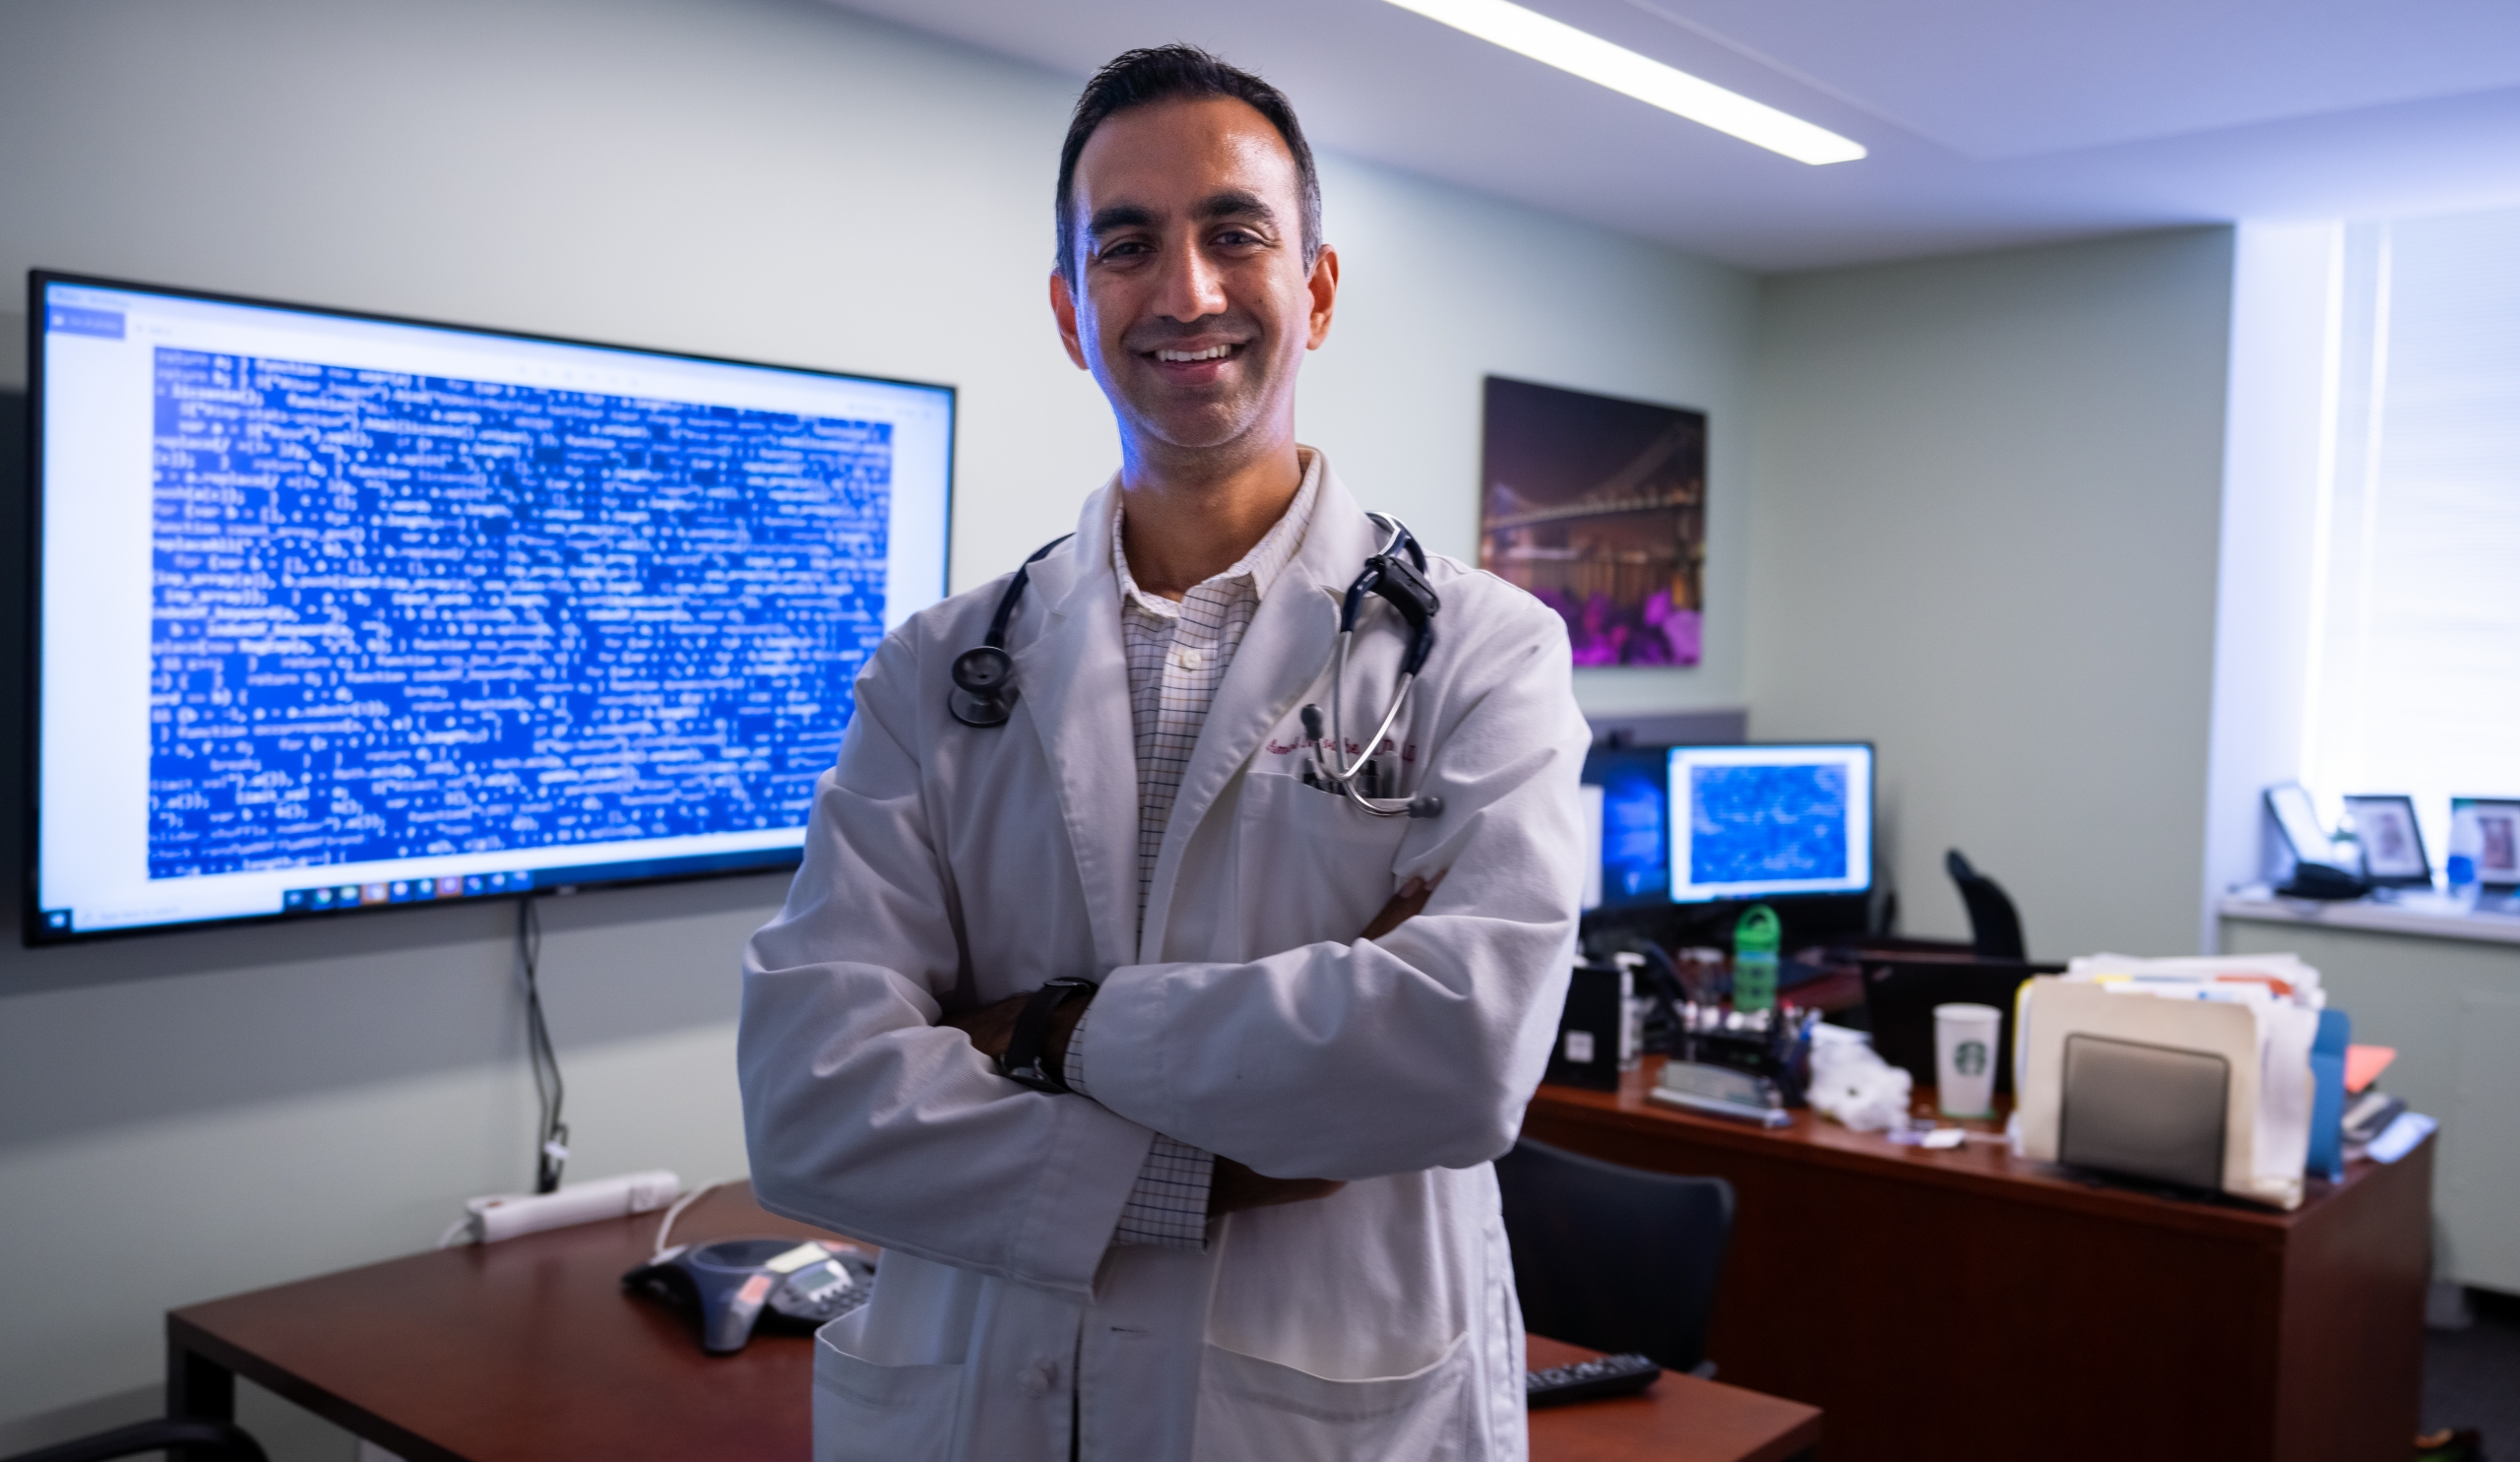 Dr. Amol Navathe is a physician, health economist, and engineer. Among other areas, he has expertise in applying informatics and predictive analytics to health care. (Photo by Sam Shavers)